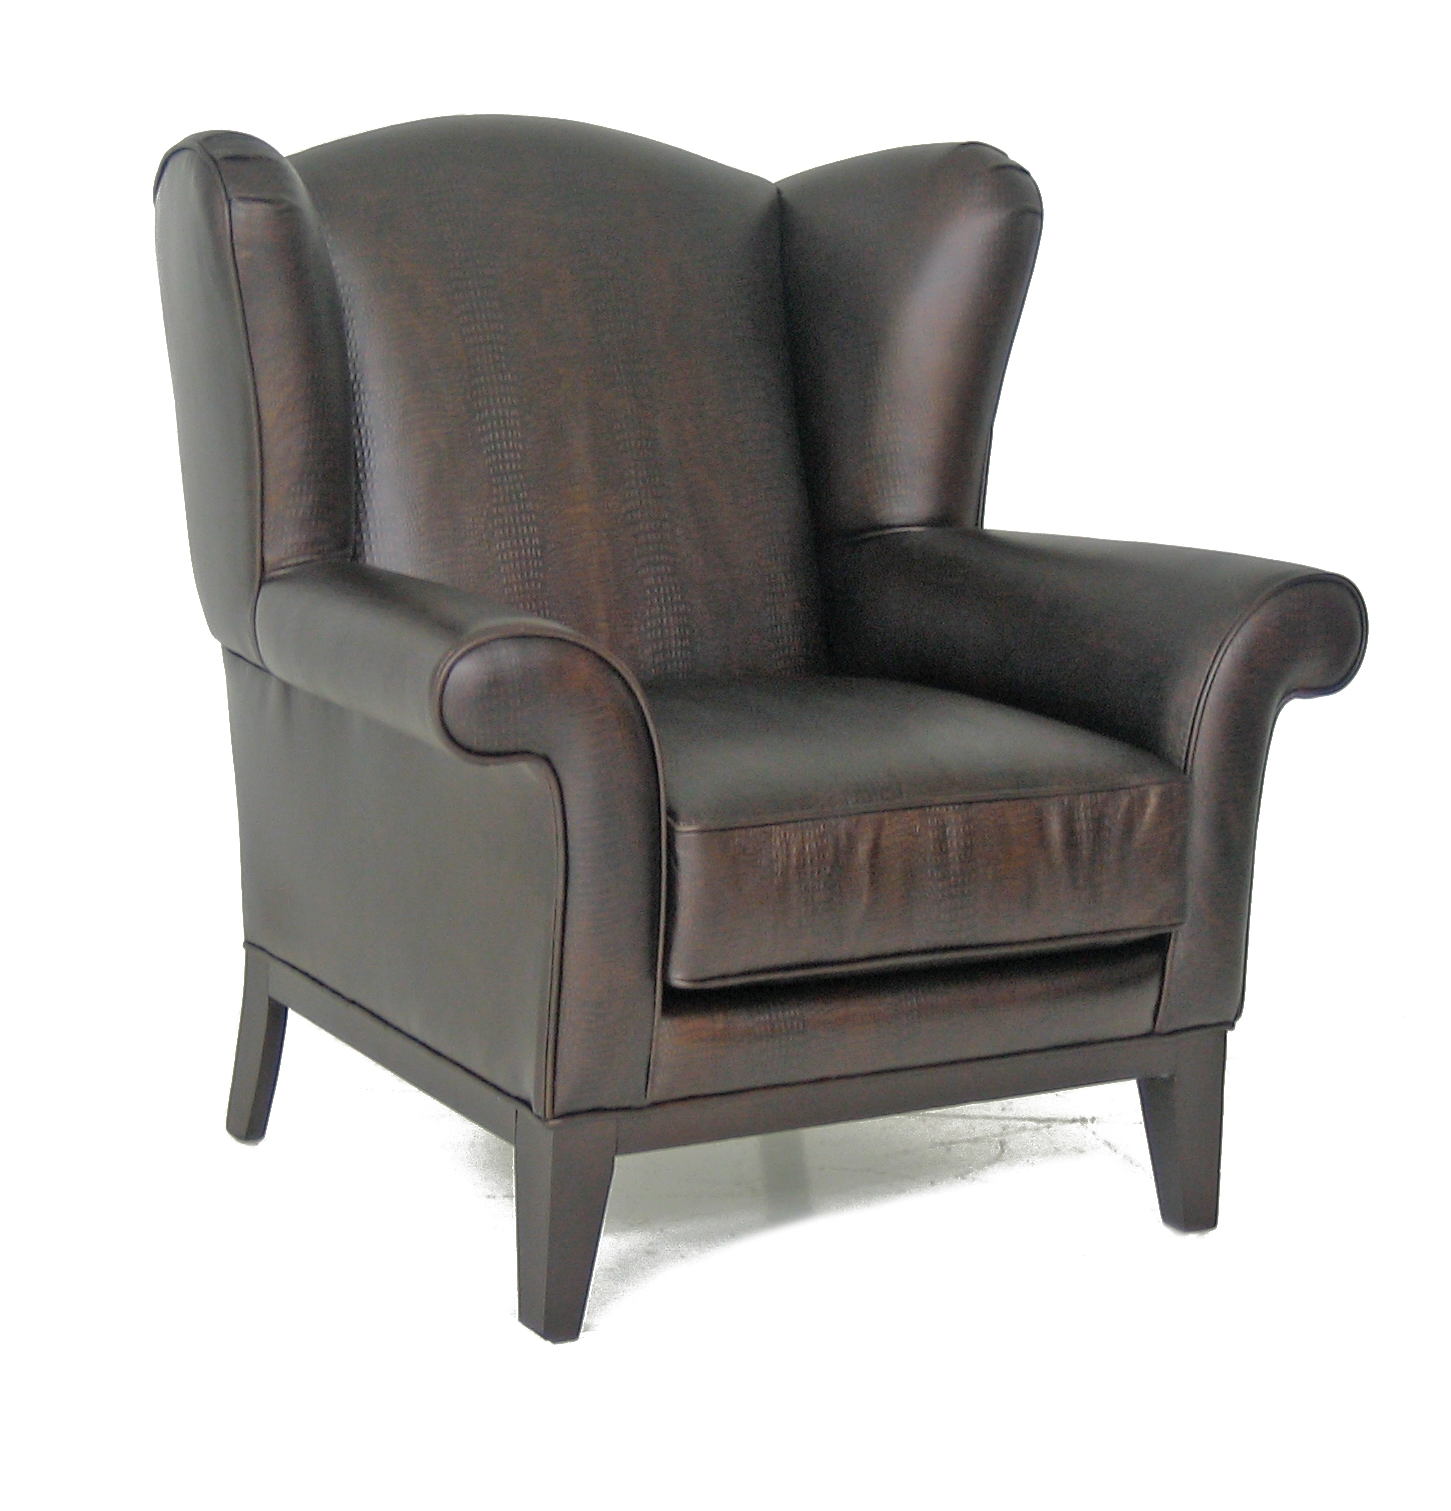 Leather Sofas Chairs In Sofas And Chairs (Image 5 of 15)